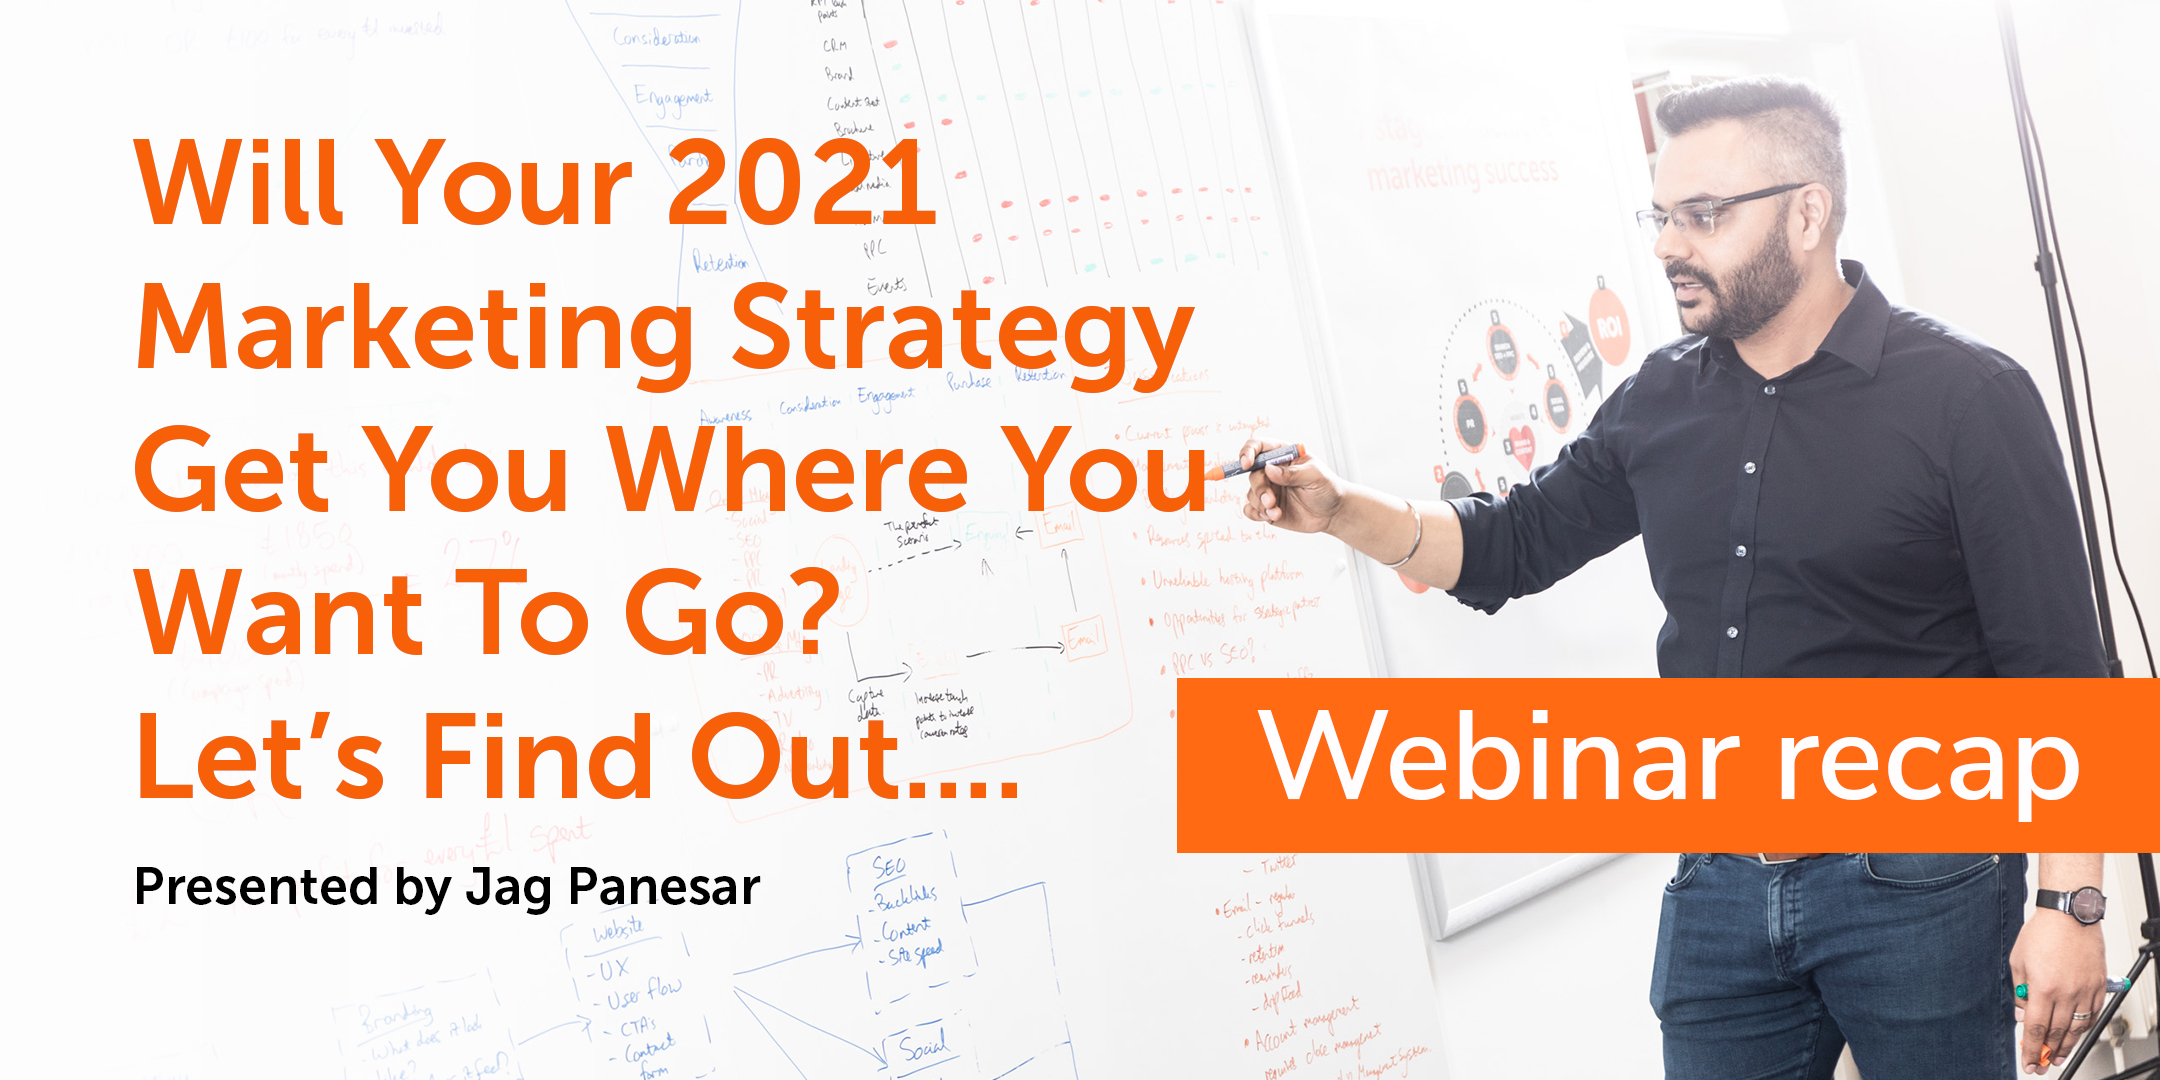 Will your 2021 marketing strategy get you where you want to go? A webinar presented by Jag Panesar